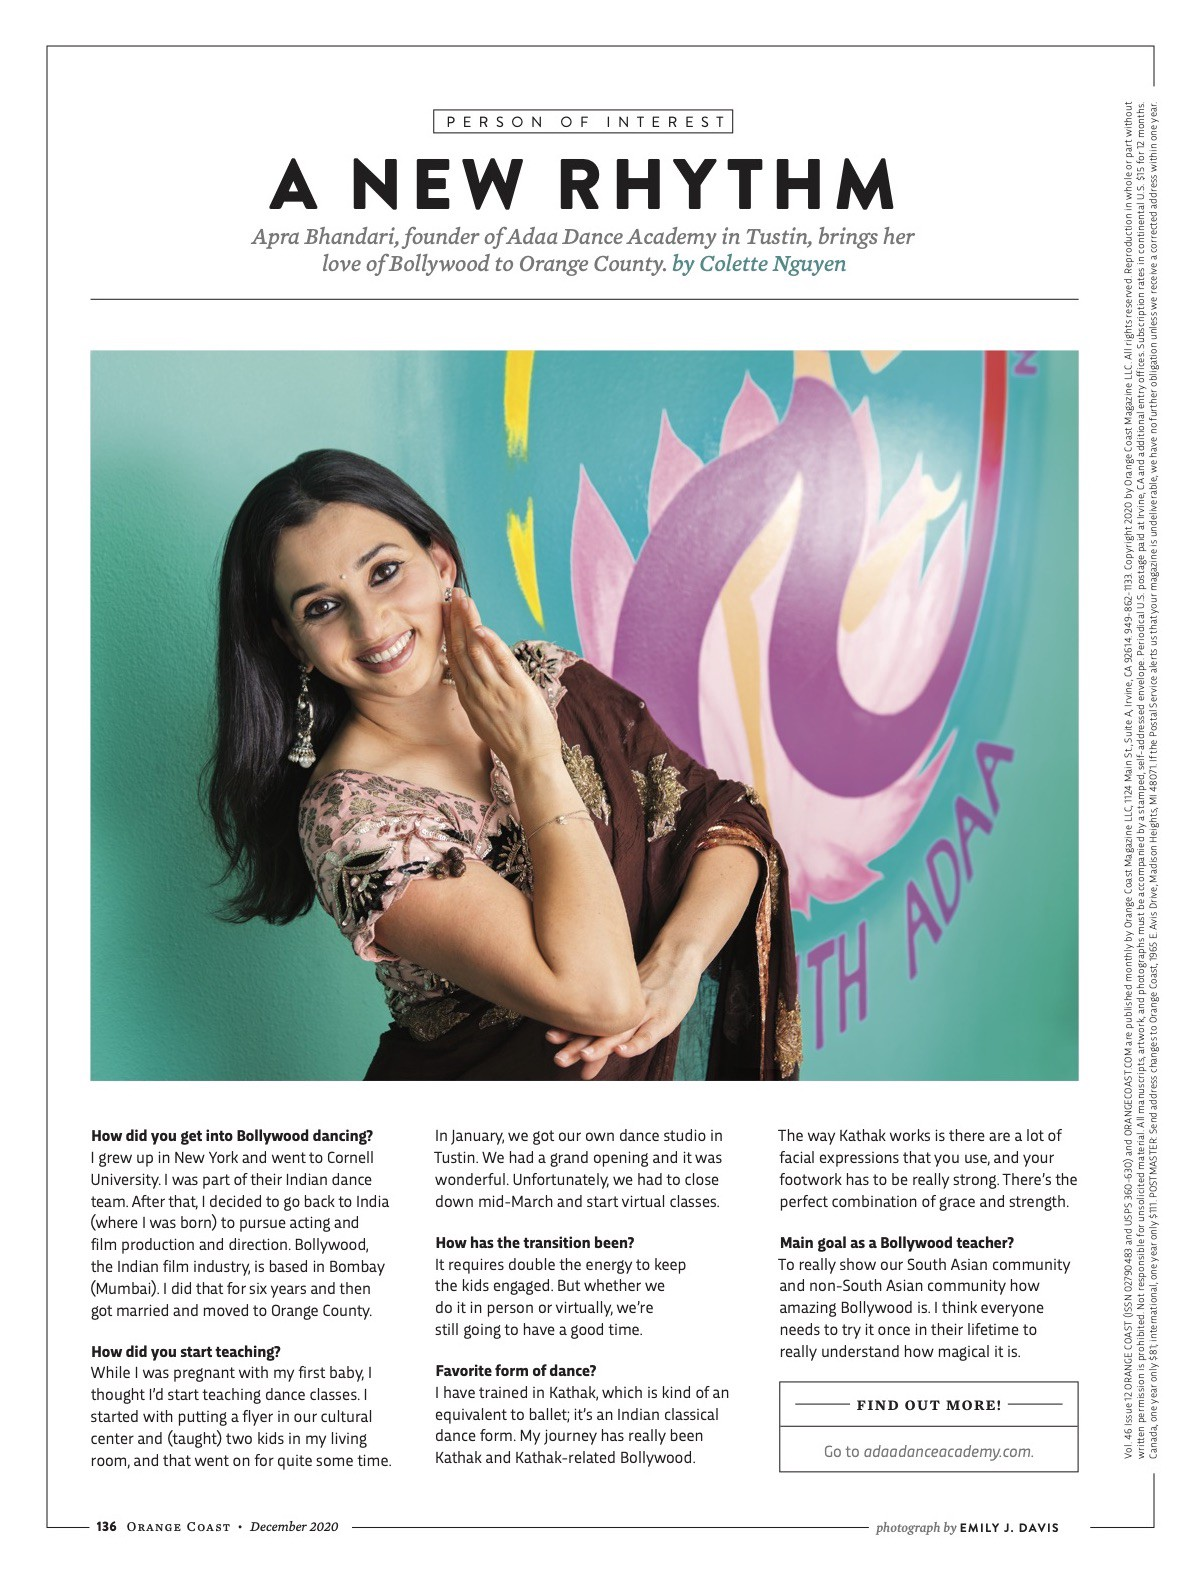 """A page from a magazine story called """"A New Rhythm"""" featuring a photo of a woman dancing in the middle"""